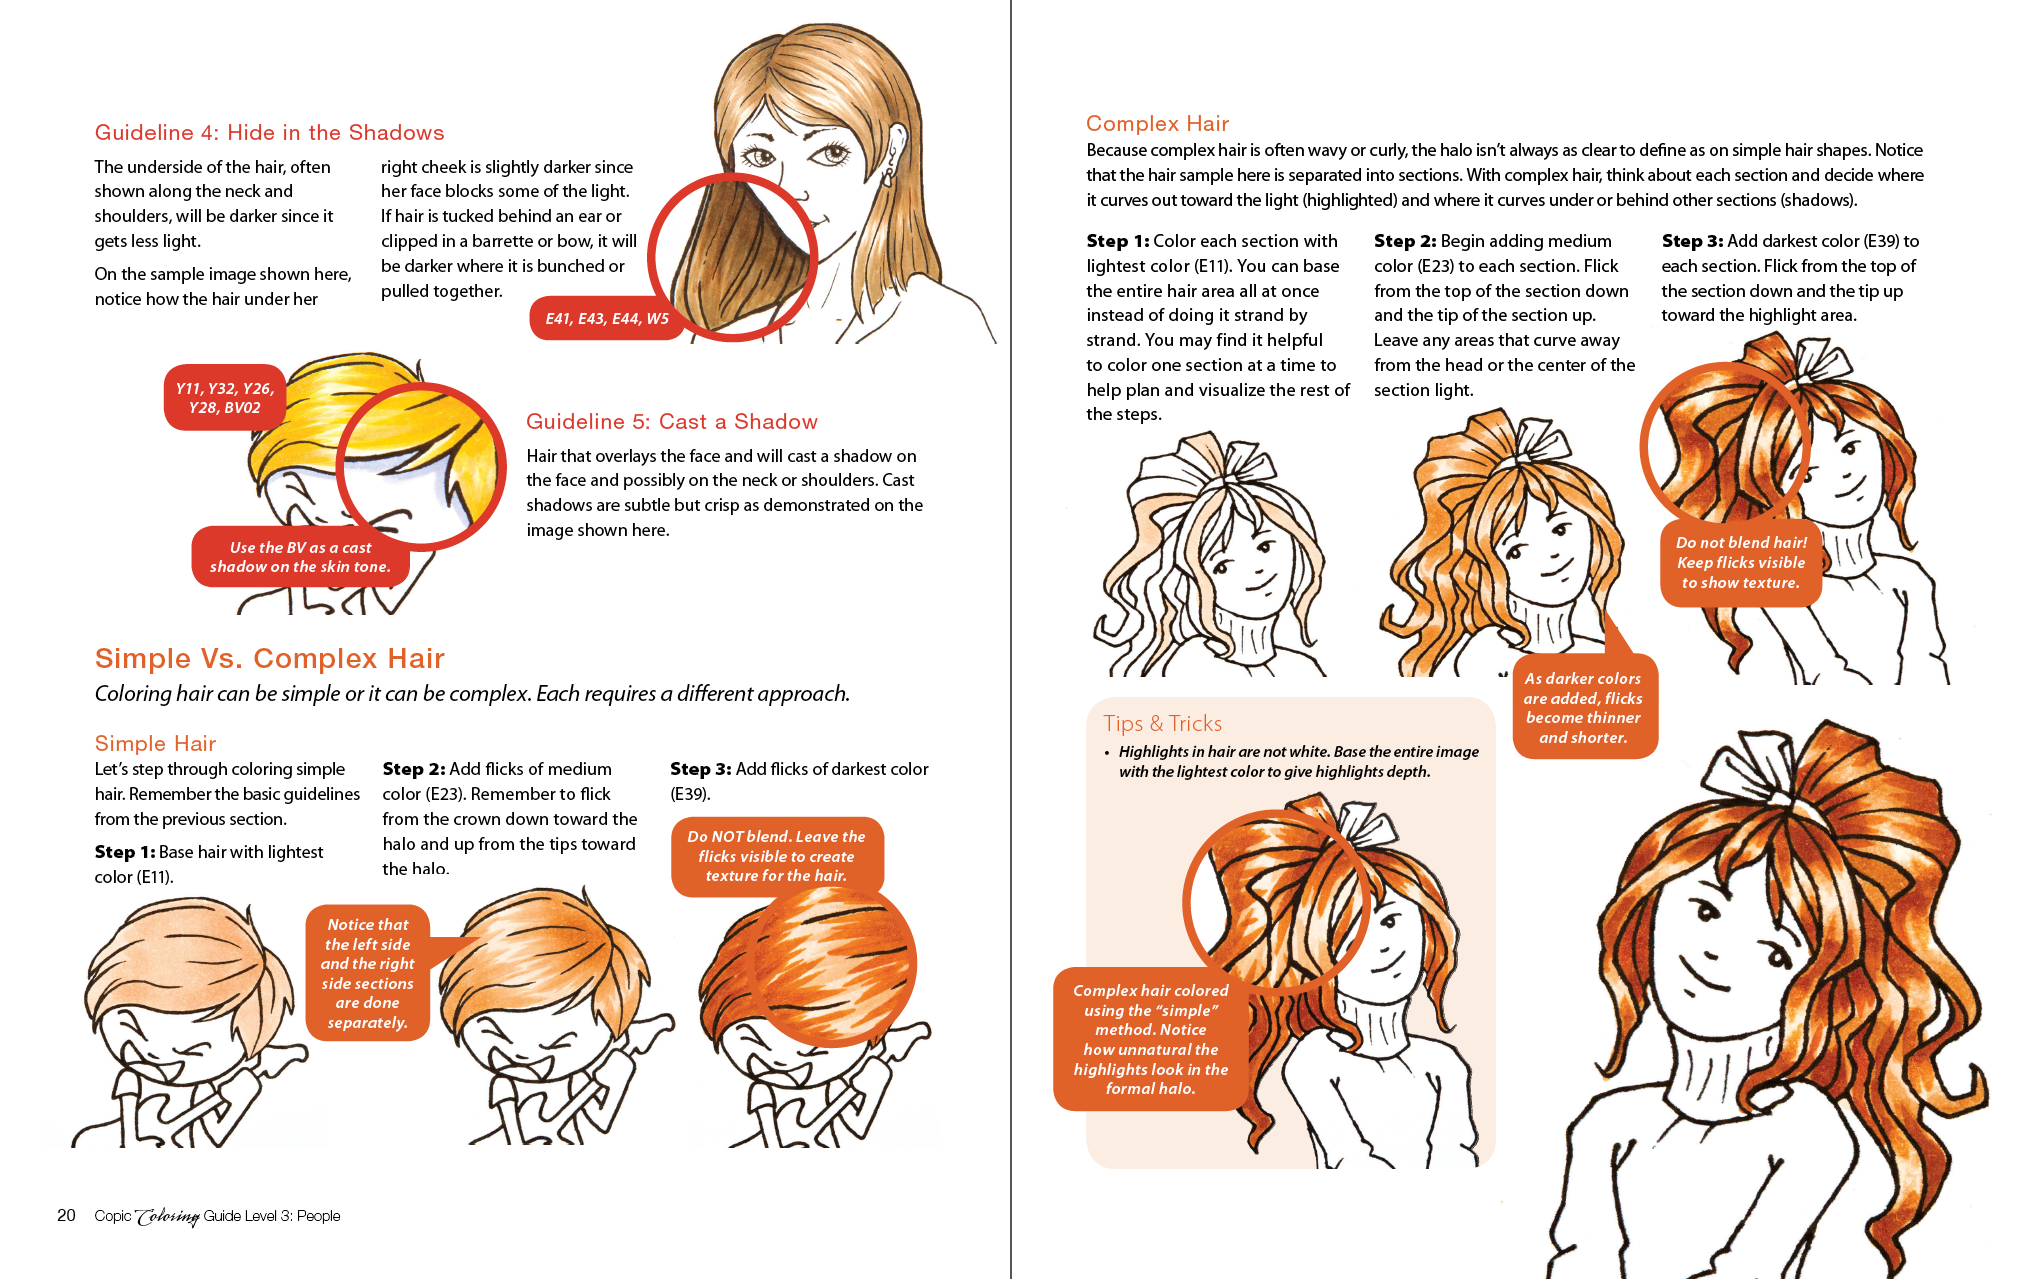 Nicole Gage - Copic Coloring Guides